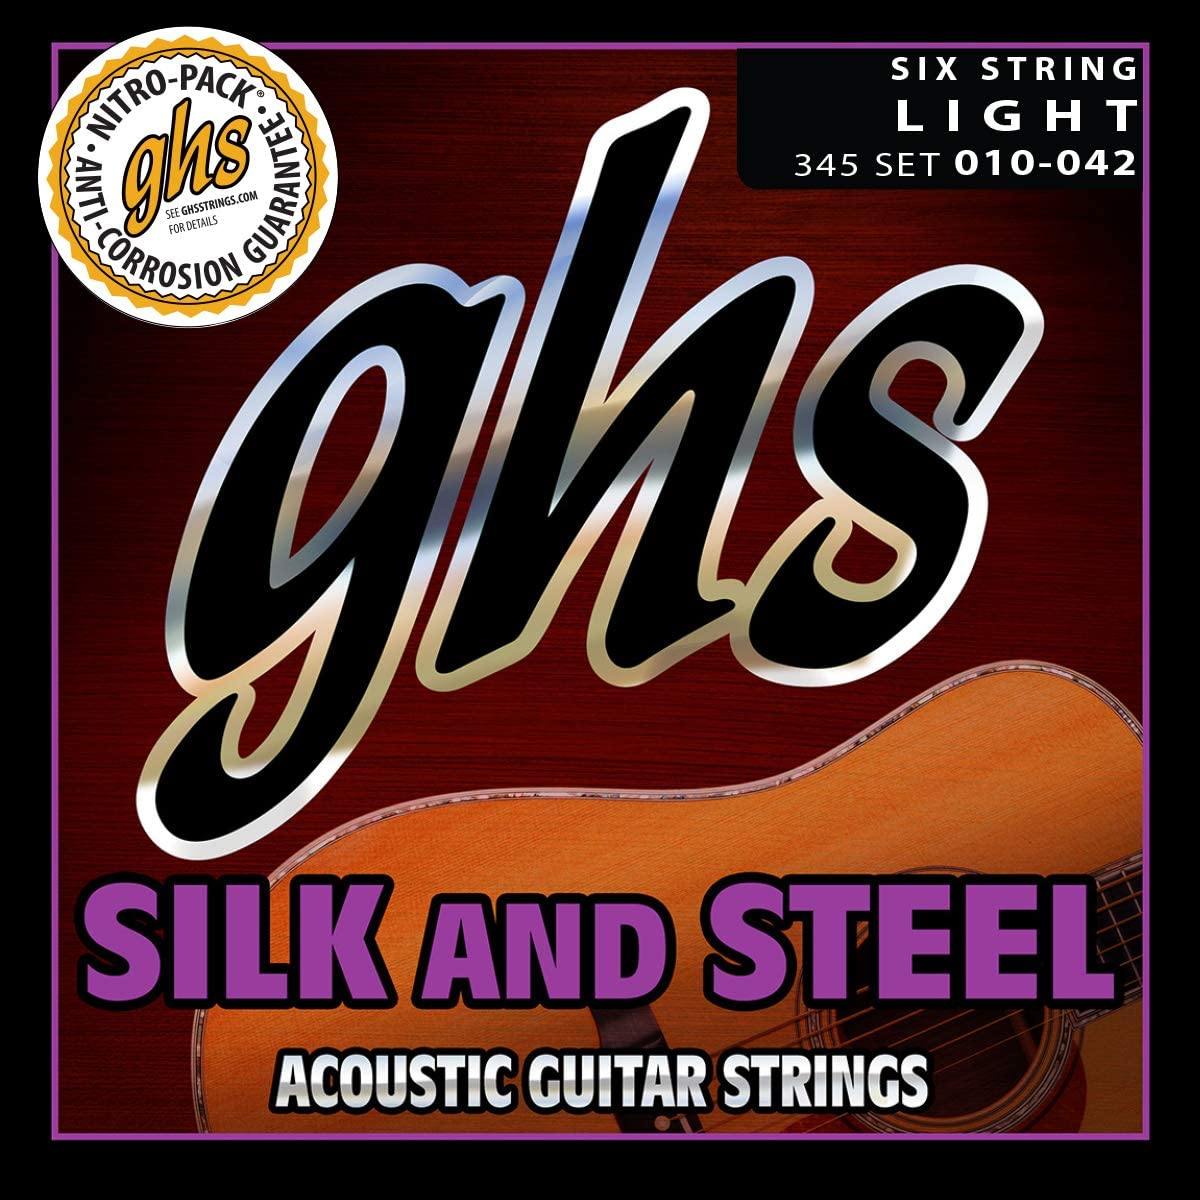 GHS Silk and Steel 345 10-42